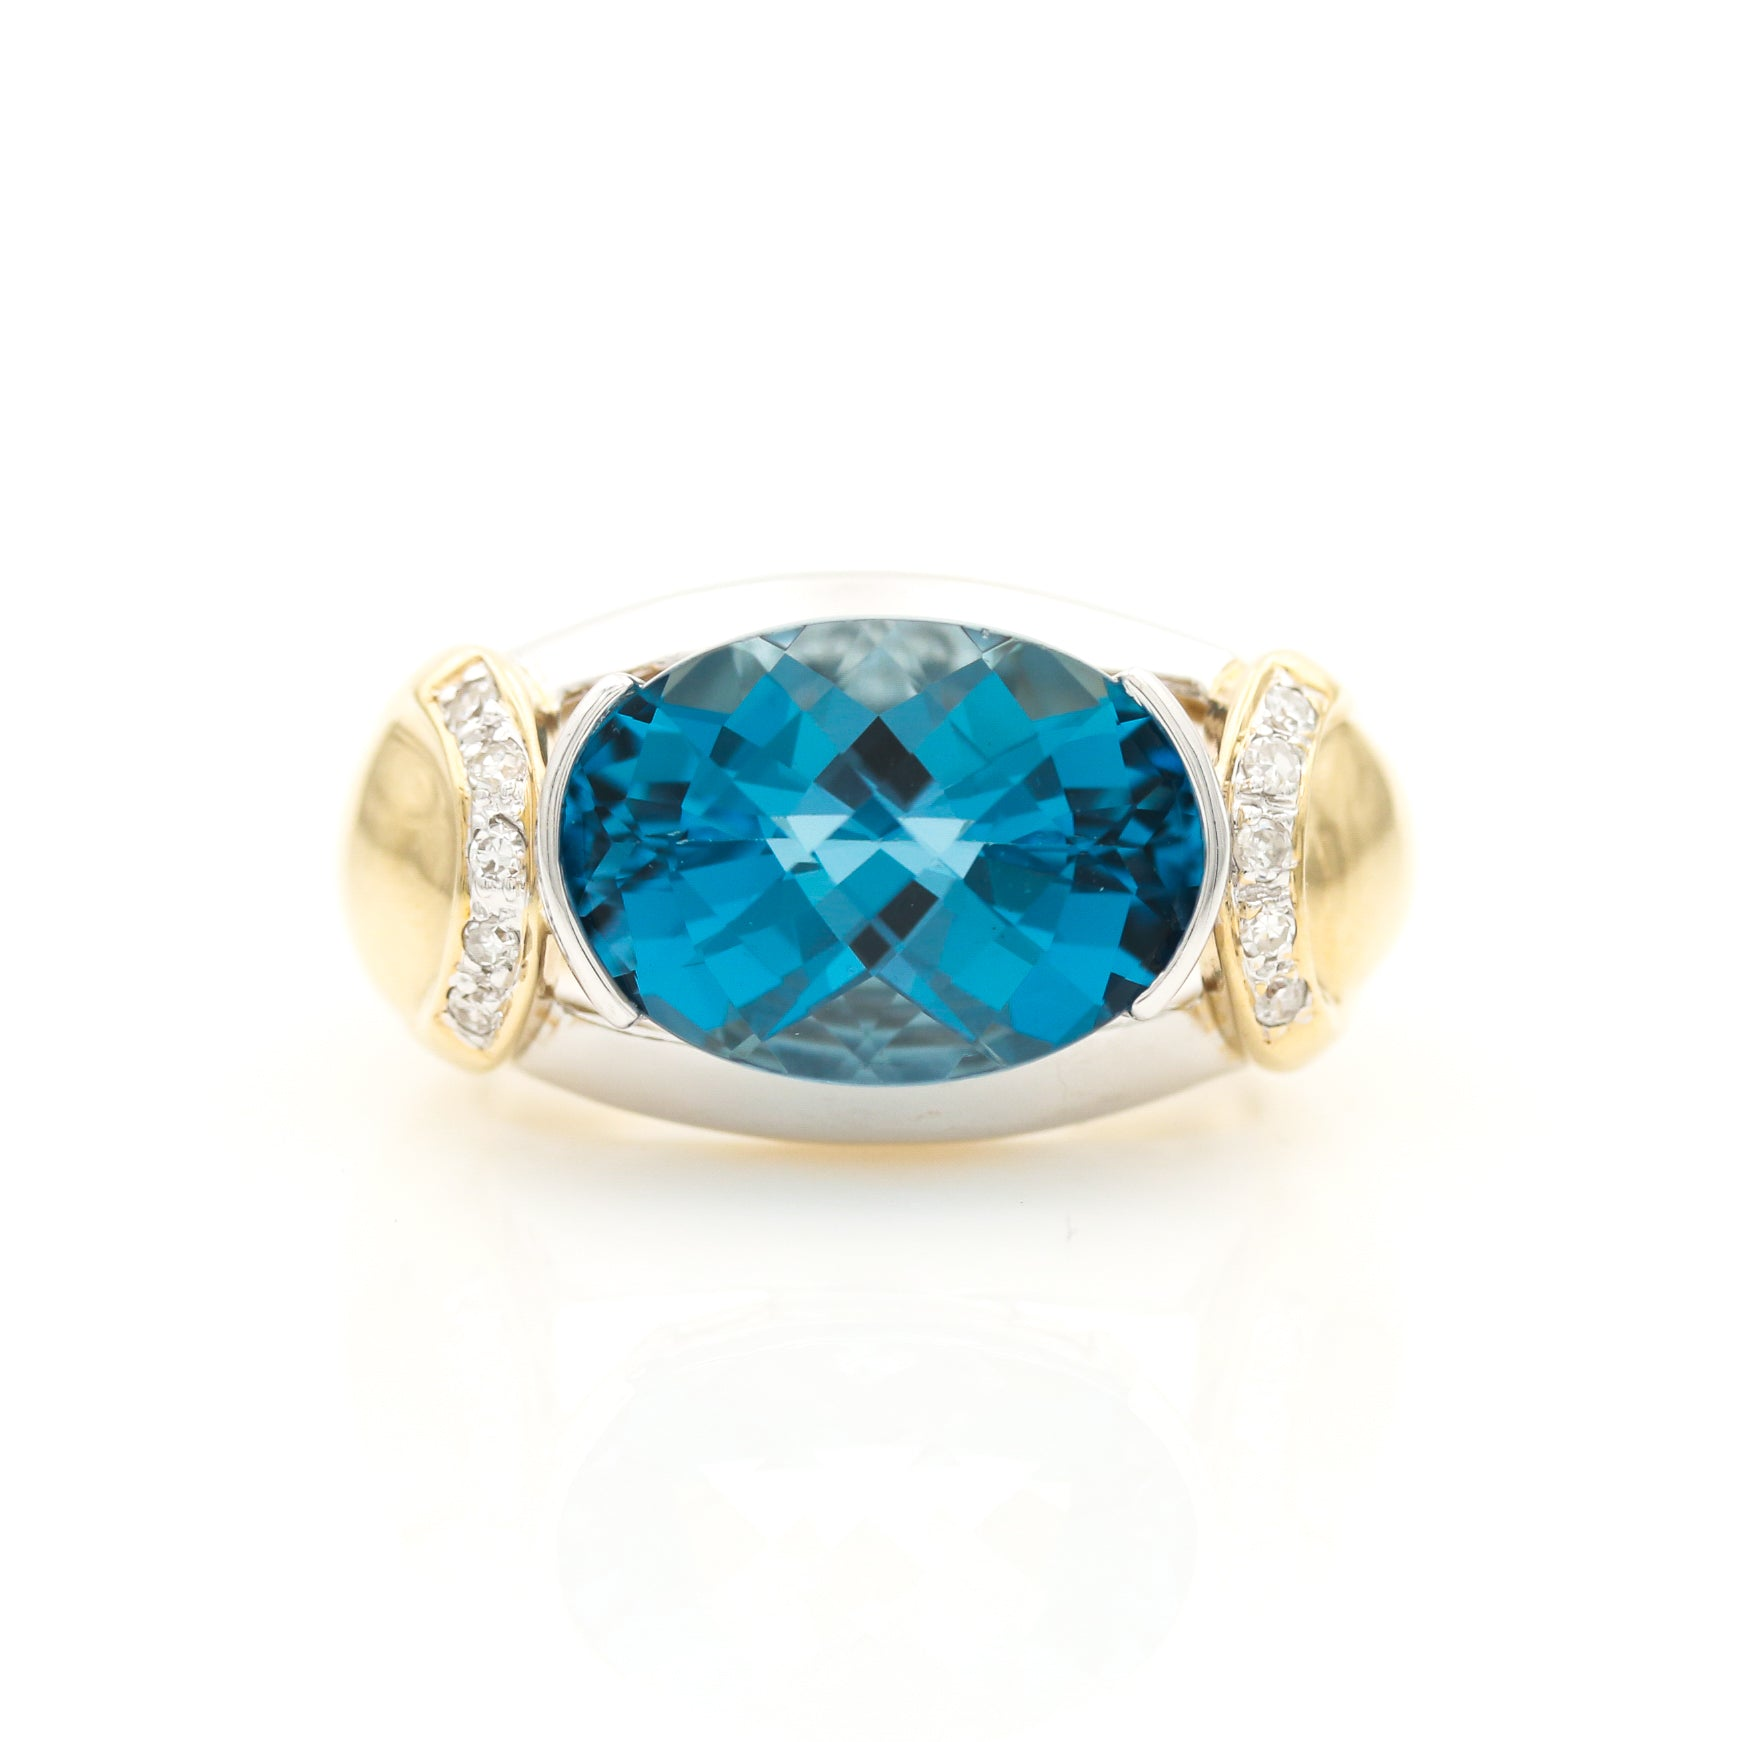 Topaz and Diamonds in Modern Two Tone Gold Ring - Sindur